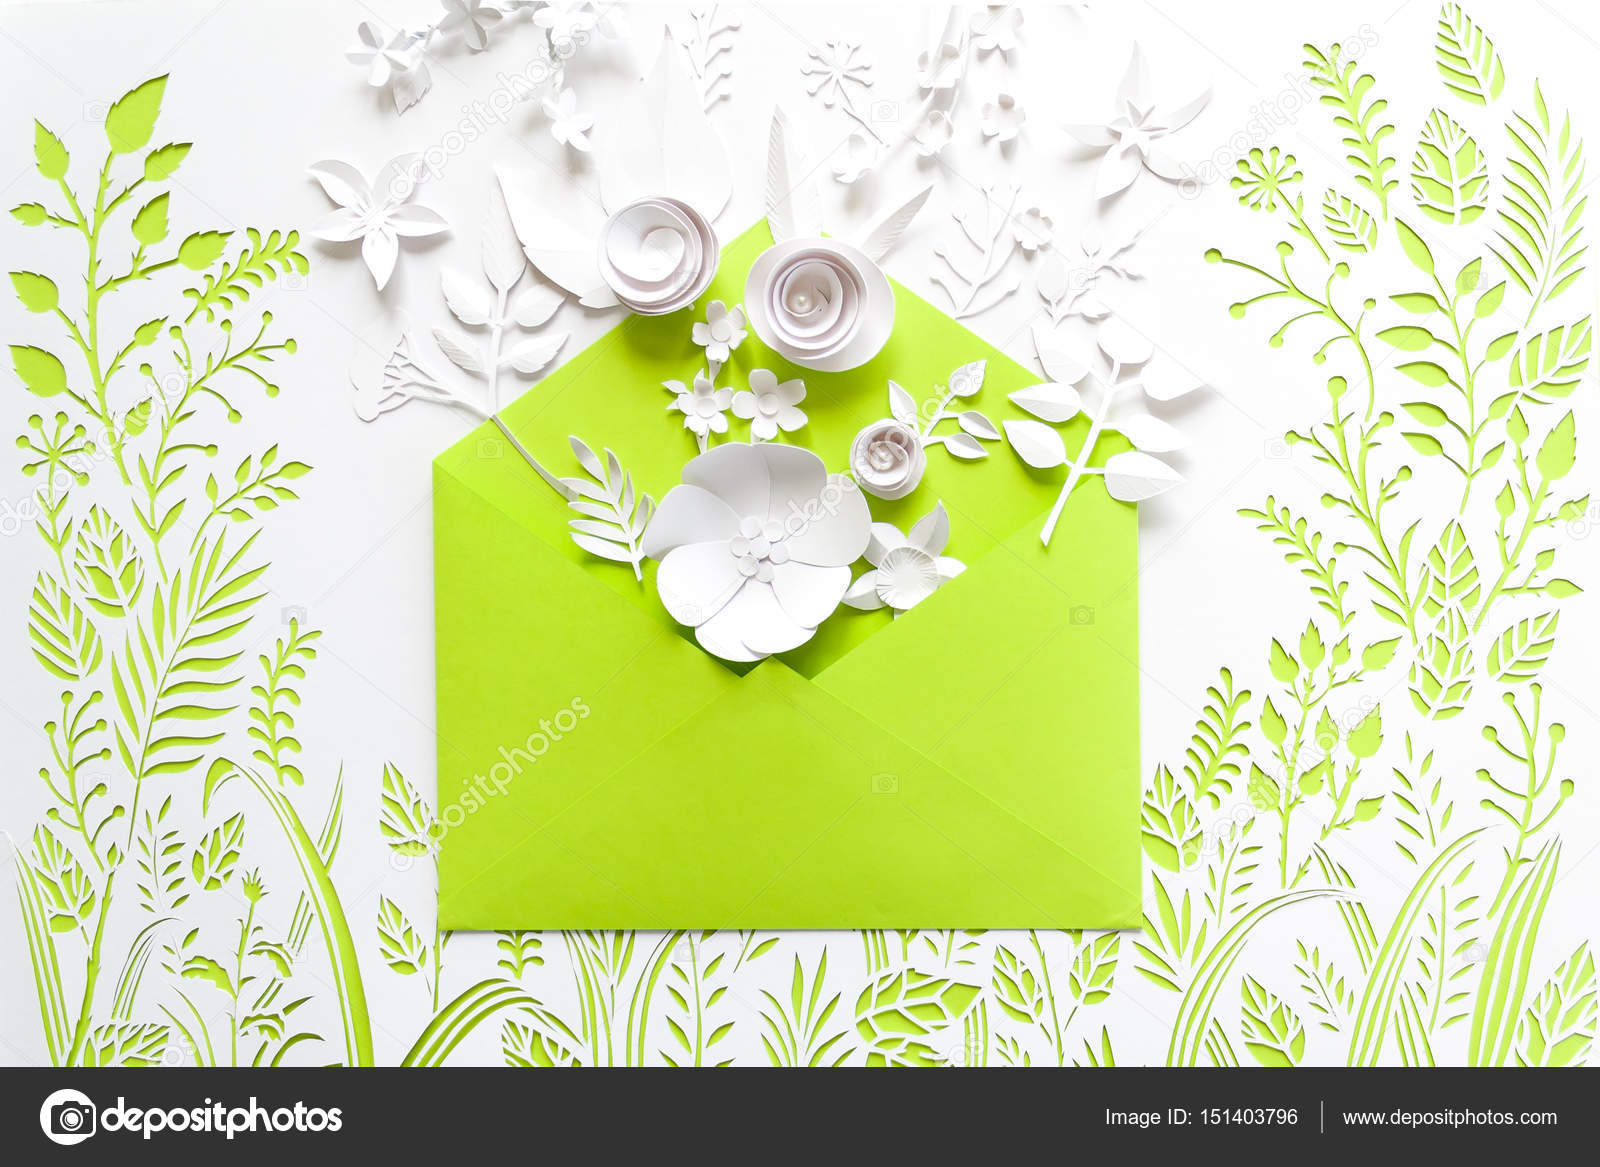 Opened craft paper envelope full of spring blossom sakura paper opened craft paper envelope full of spring blossom sakura paper flowers on white background top jeuxipadfo Gallery